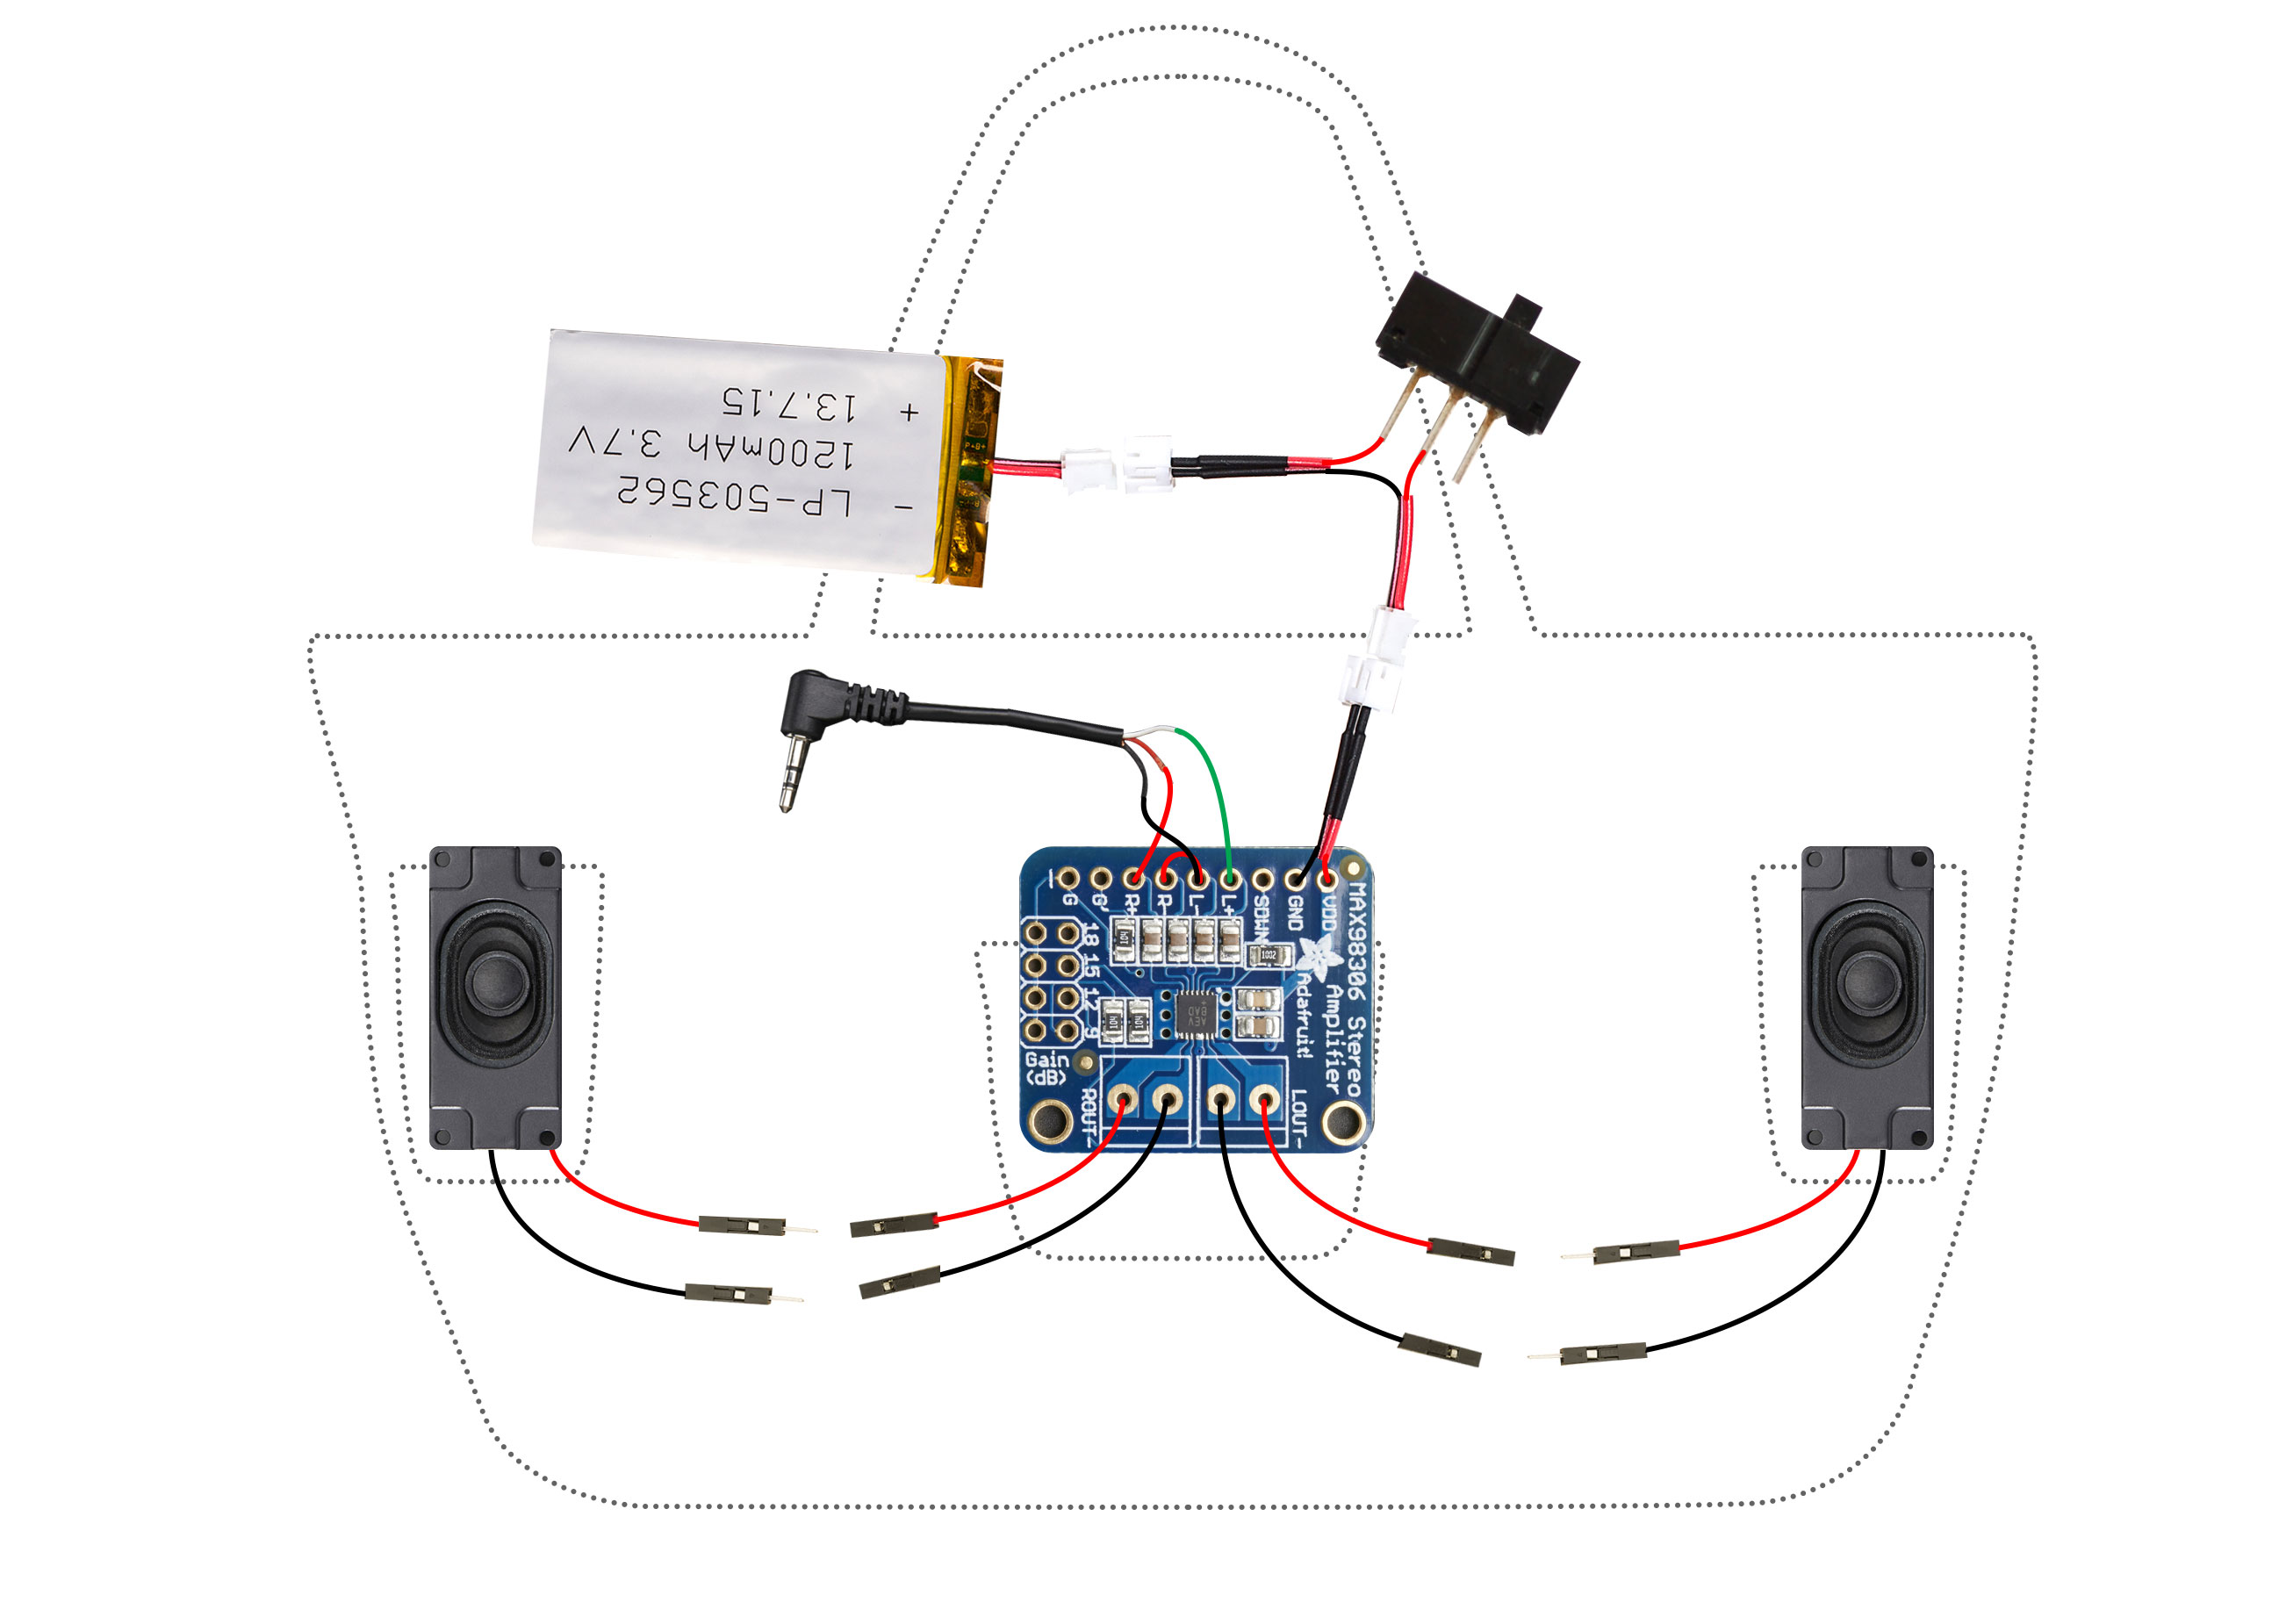 Circuit Diagram | Boombox Beach Bag with Audio Amp and Speakers ...